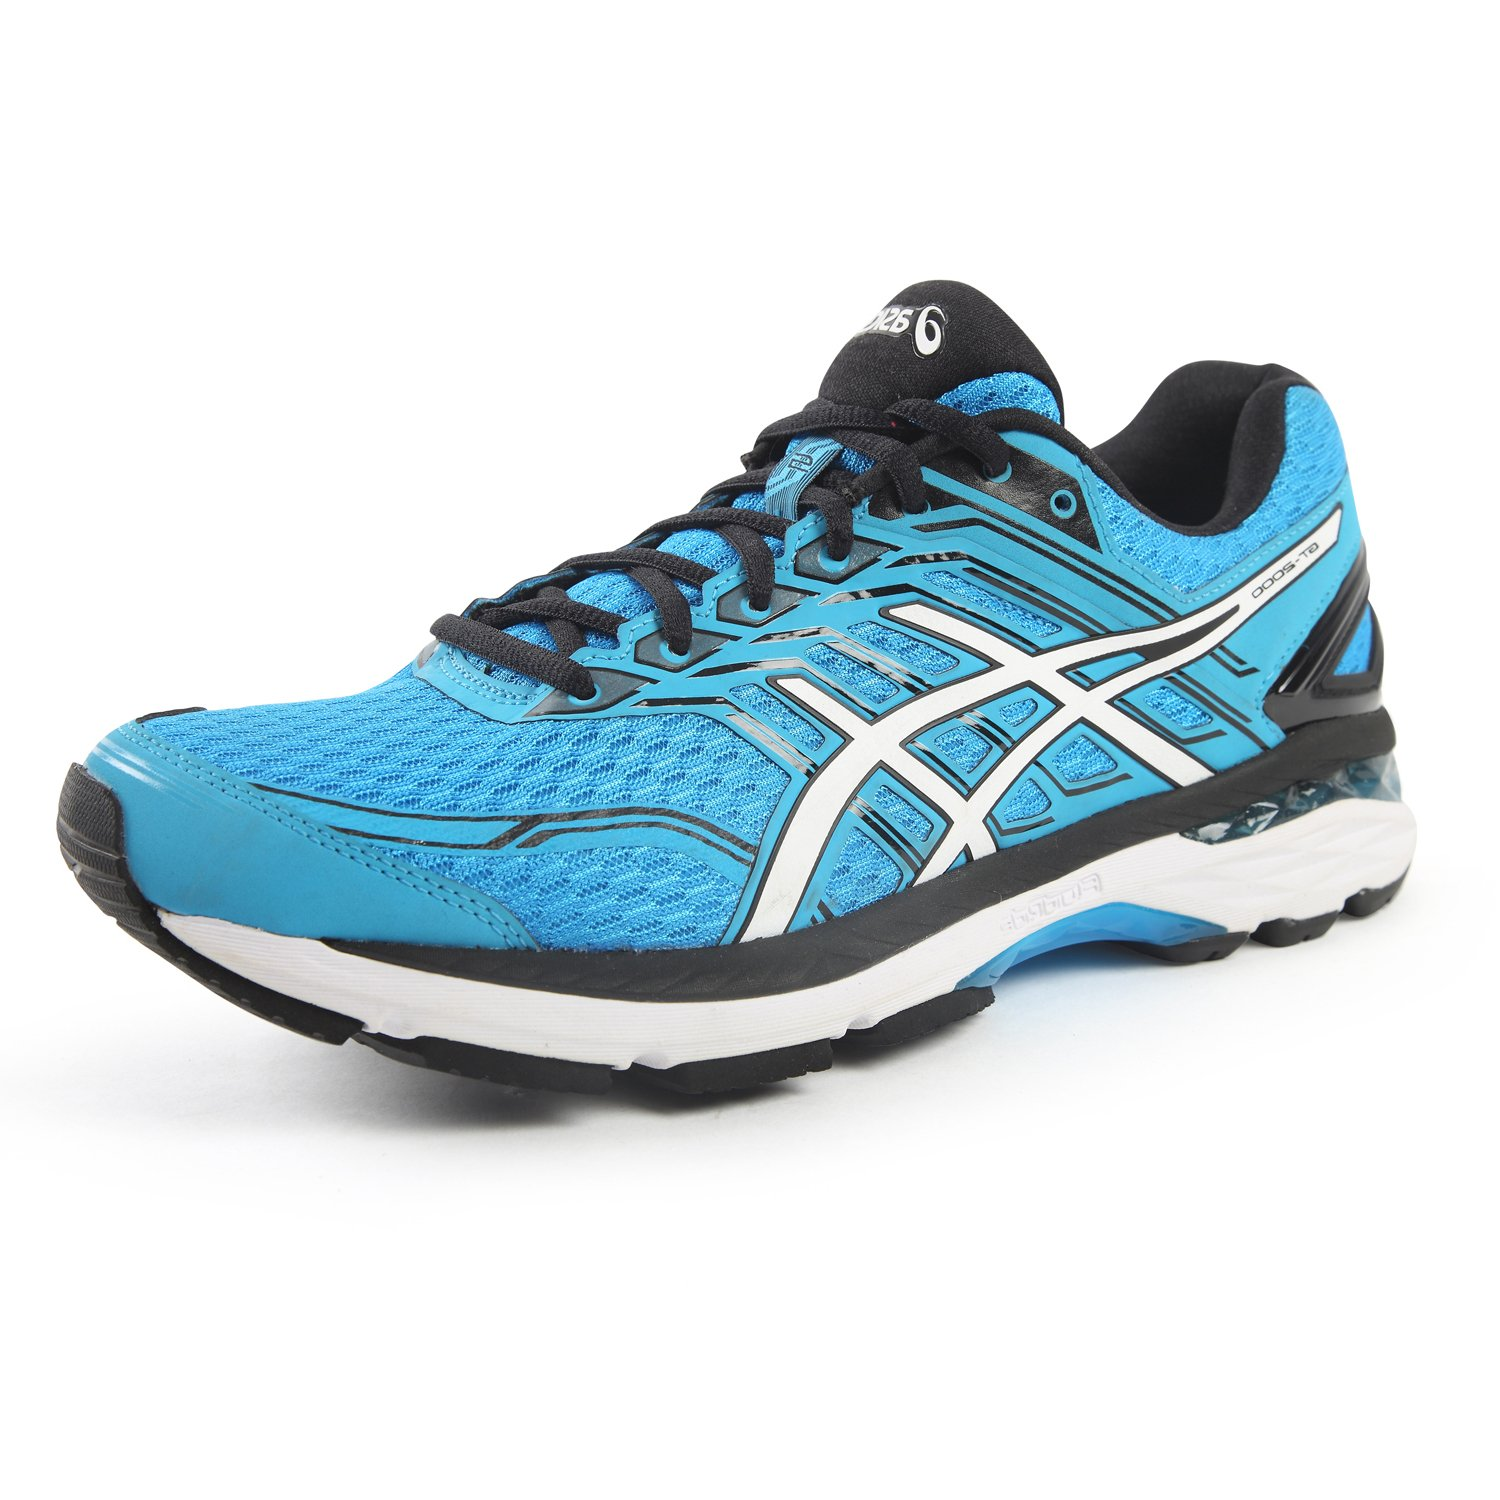 47904c28416f8 Asics Men's Running Shoes: Buy Online at Low Prices in India - Amazon.in